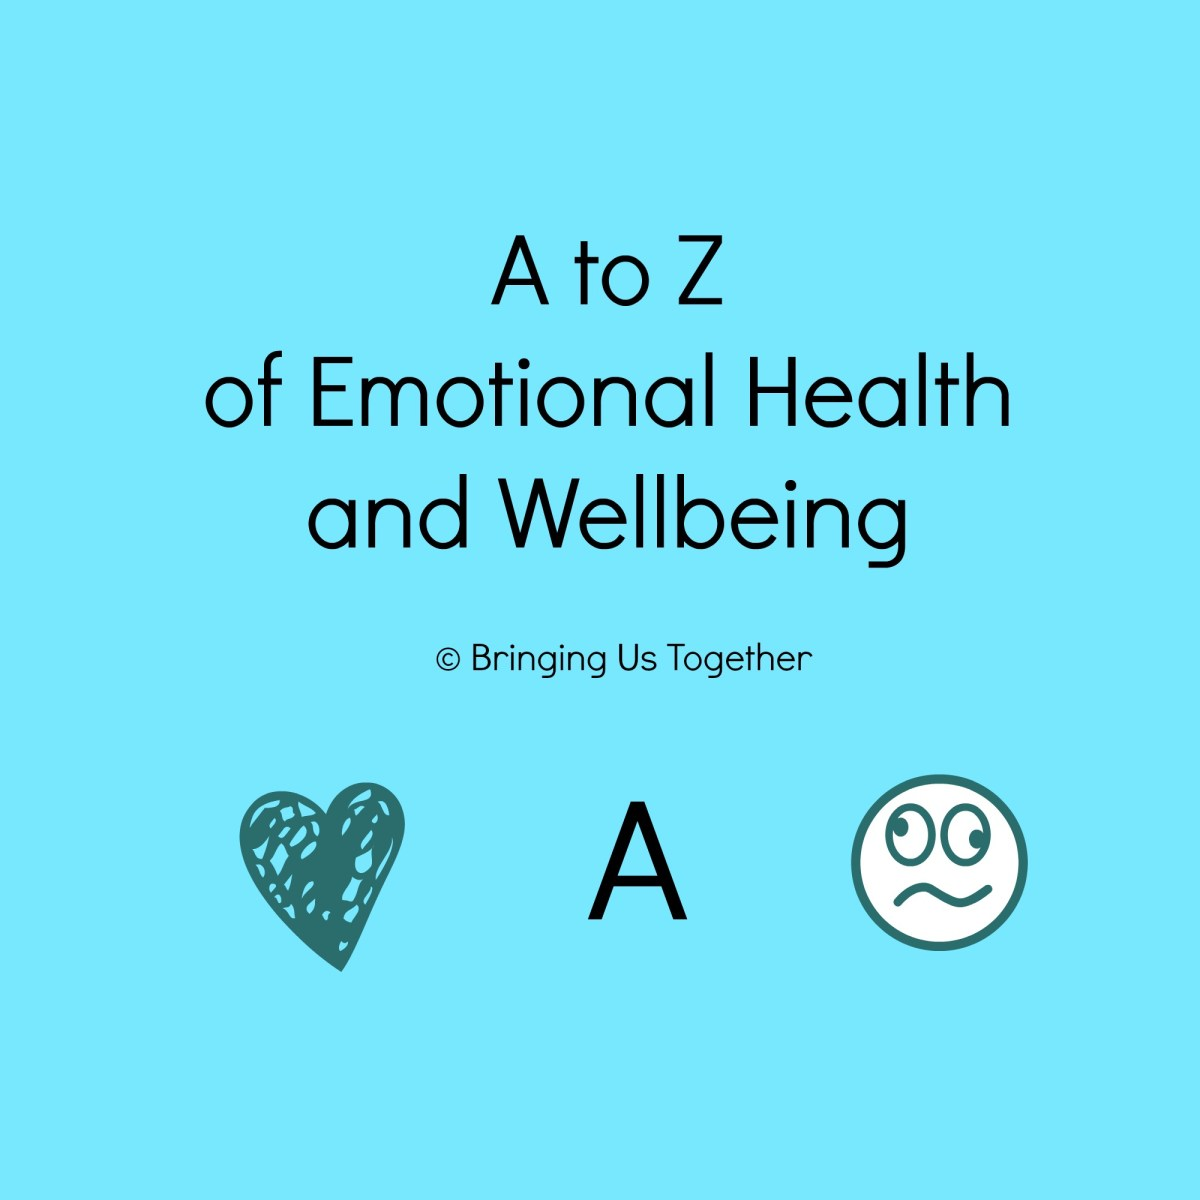 A is for:  A to Z of Emotional Health and Wellbeing -